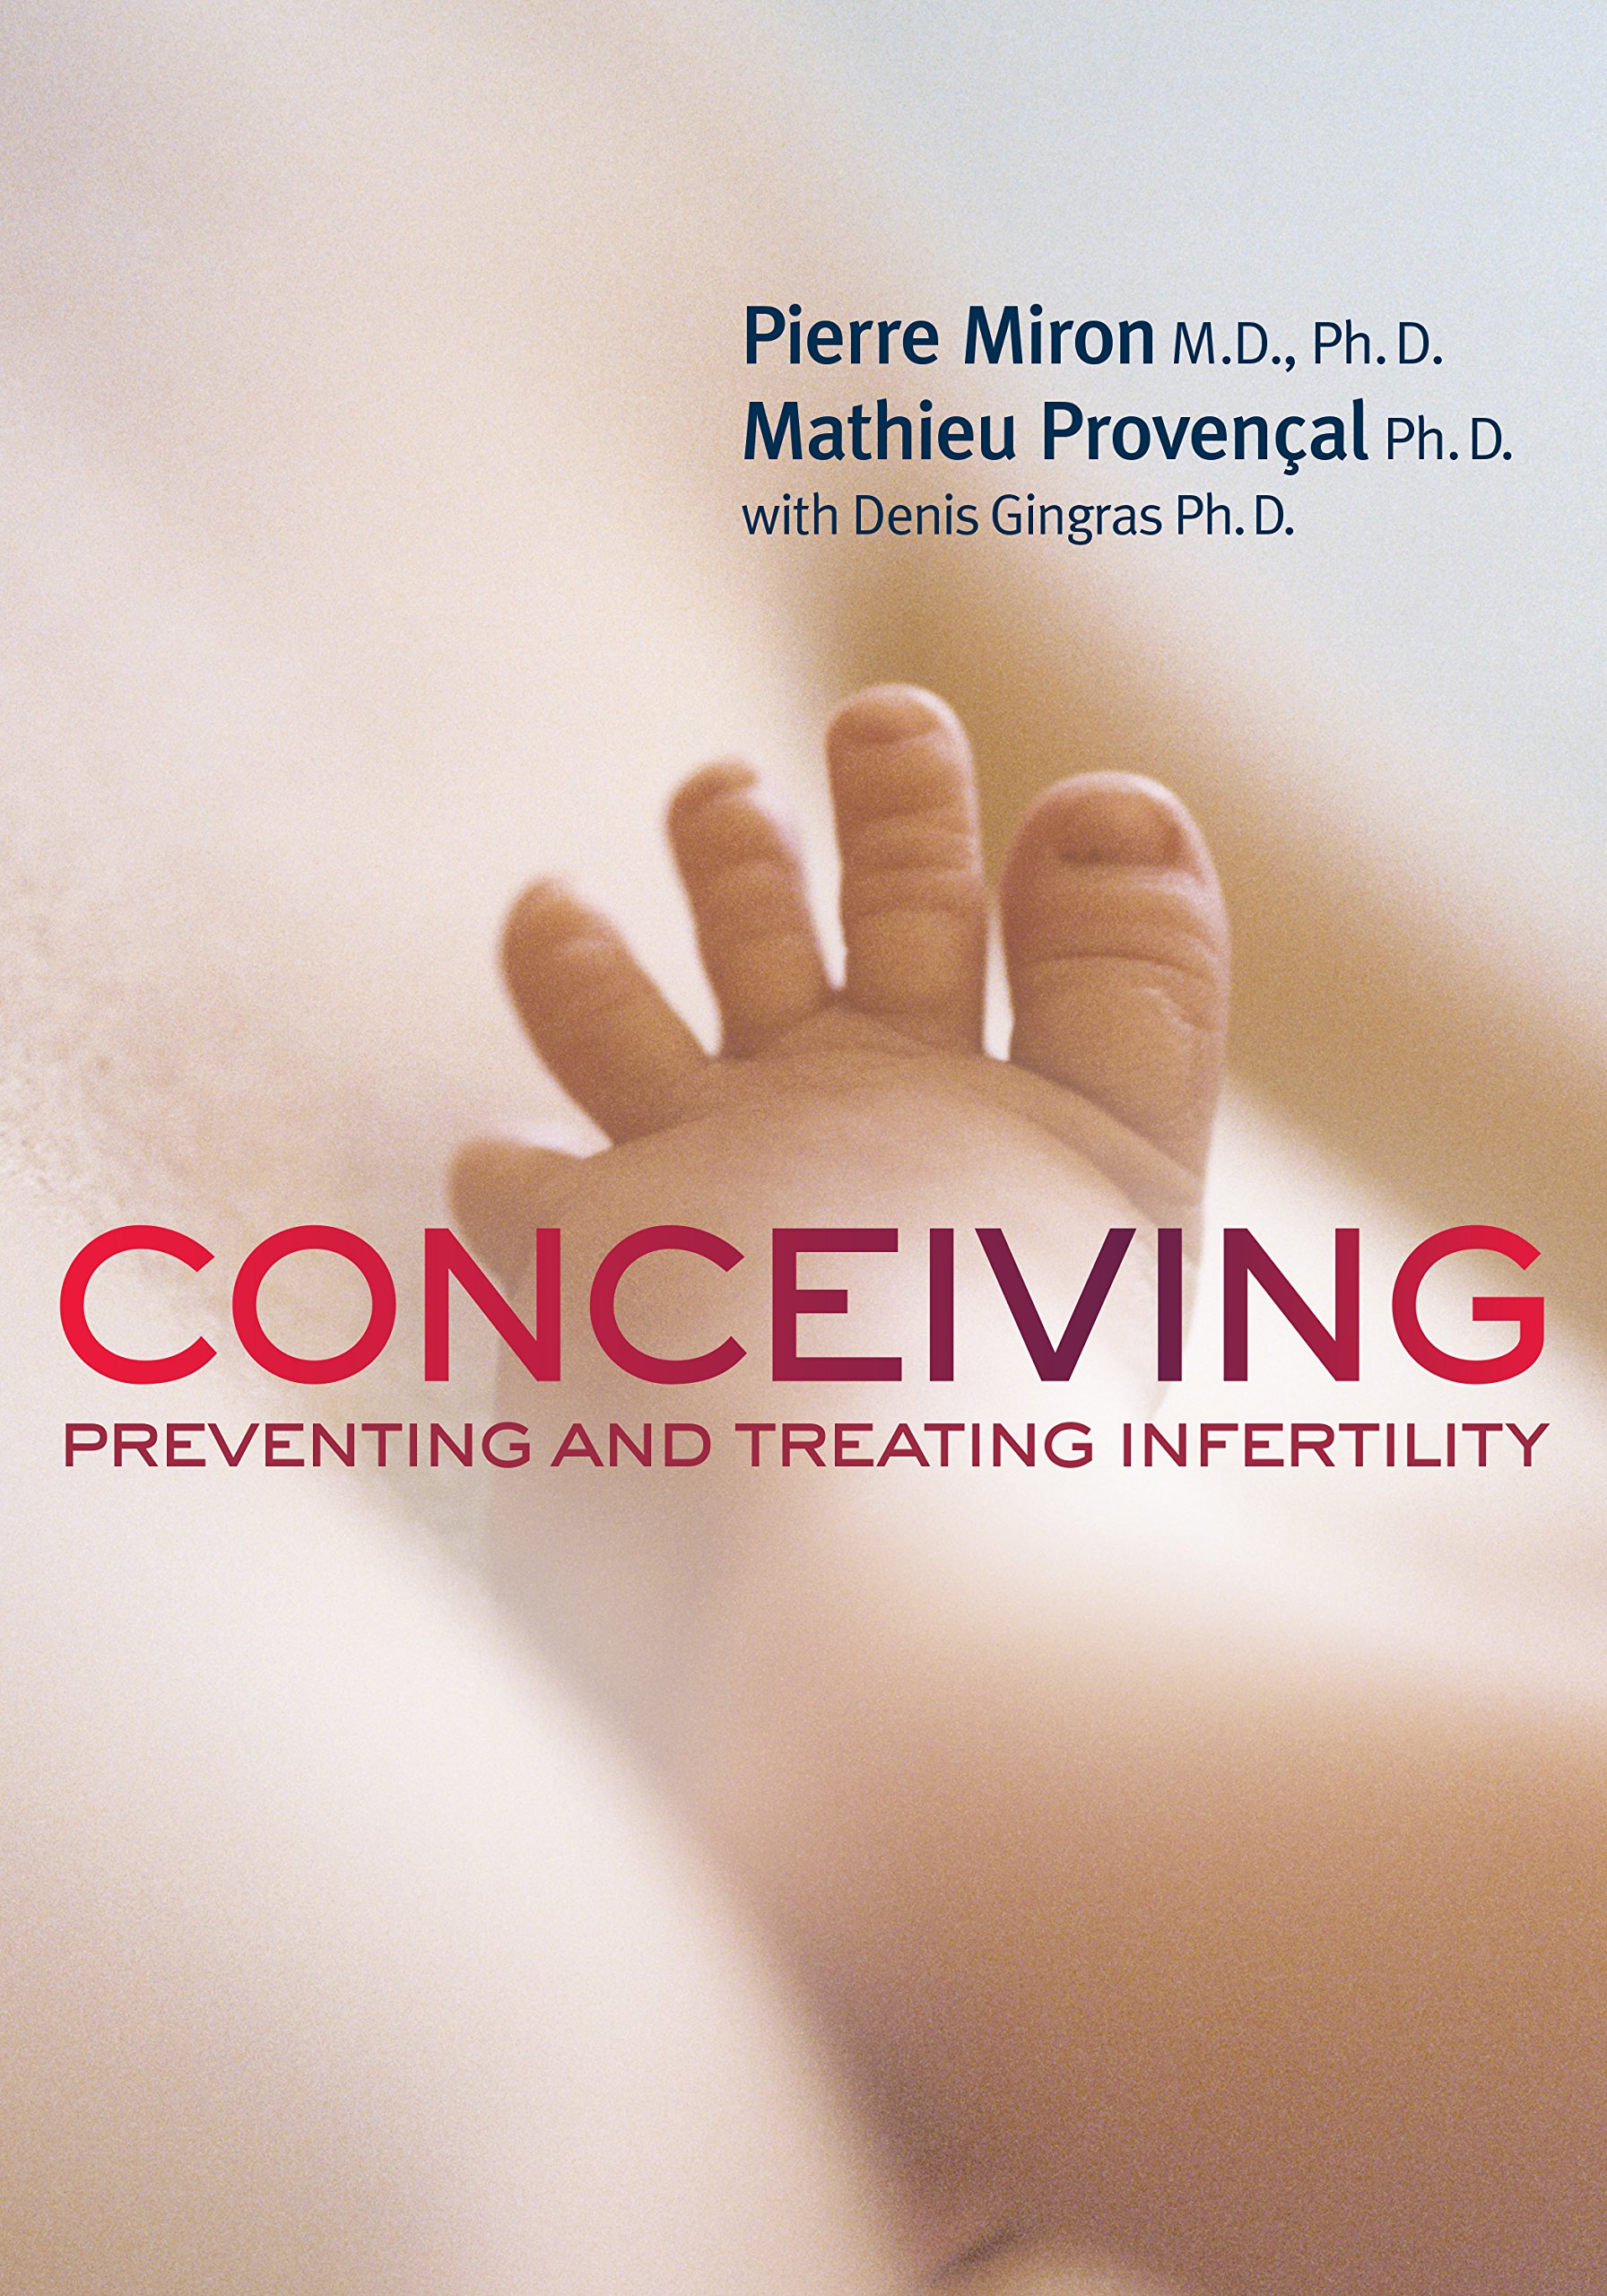 Image OfConceiving: Preventing And Treating Infertility (Your Health Book 4)